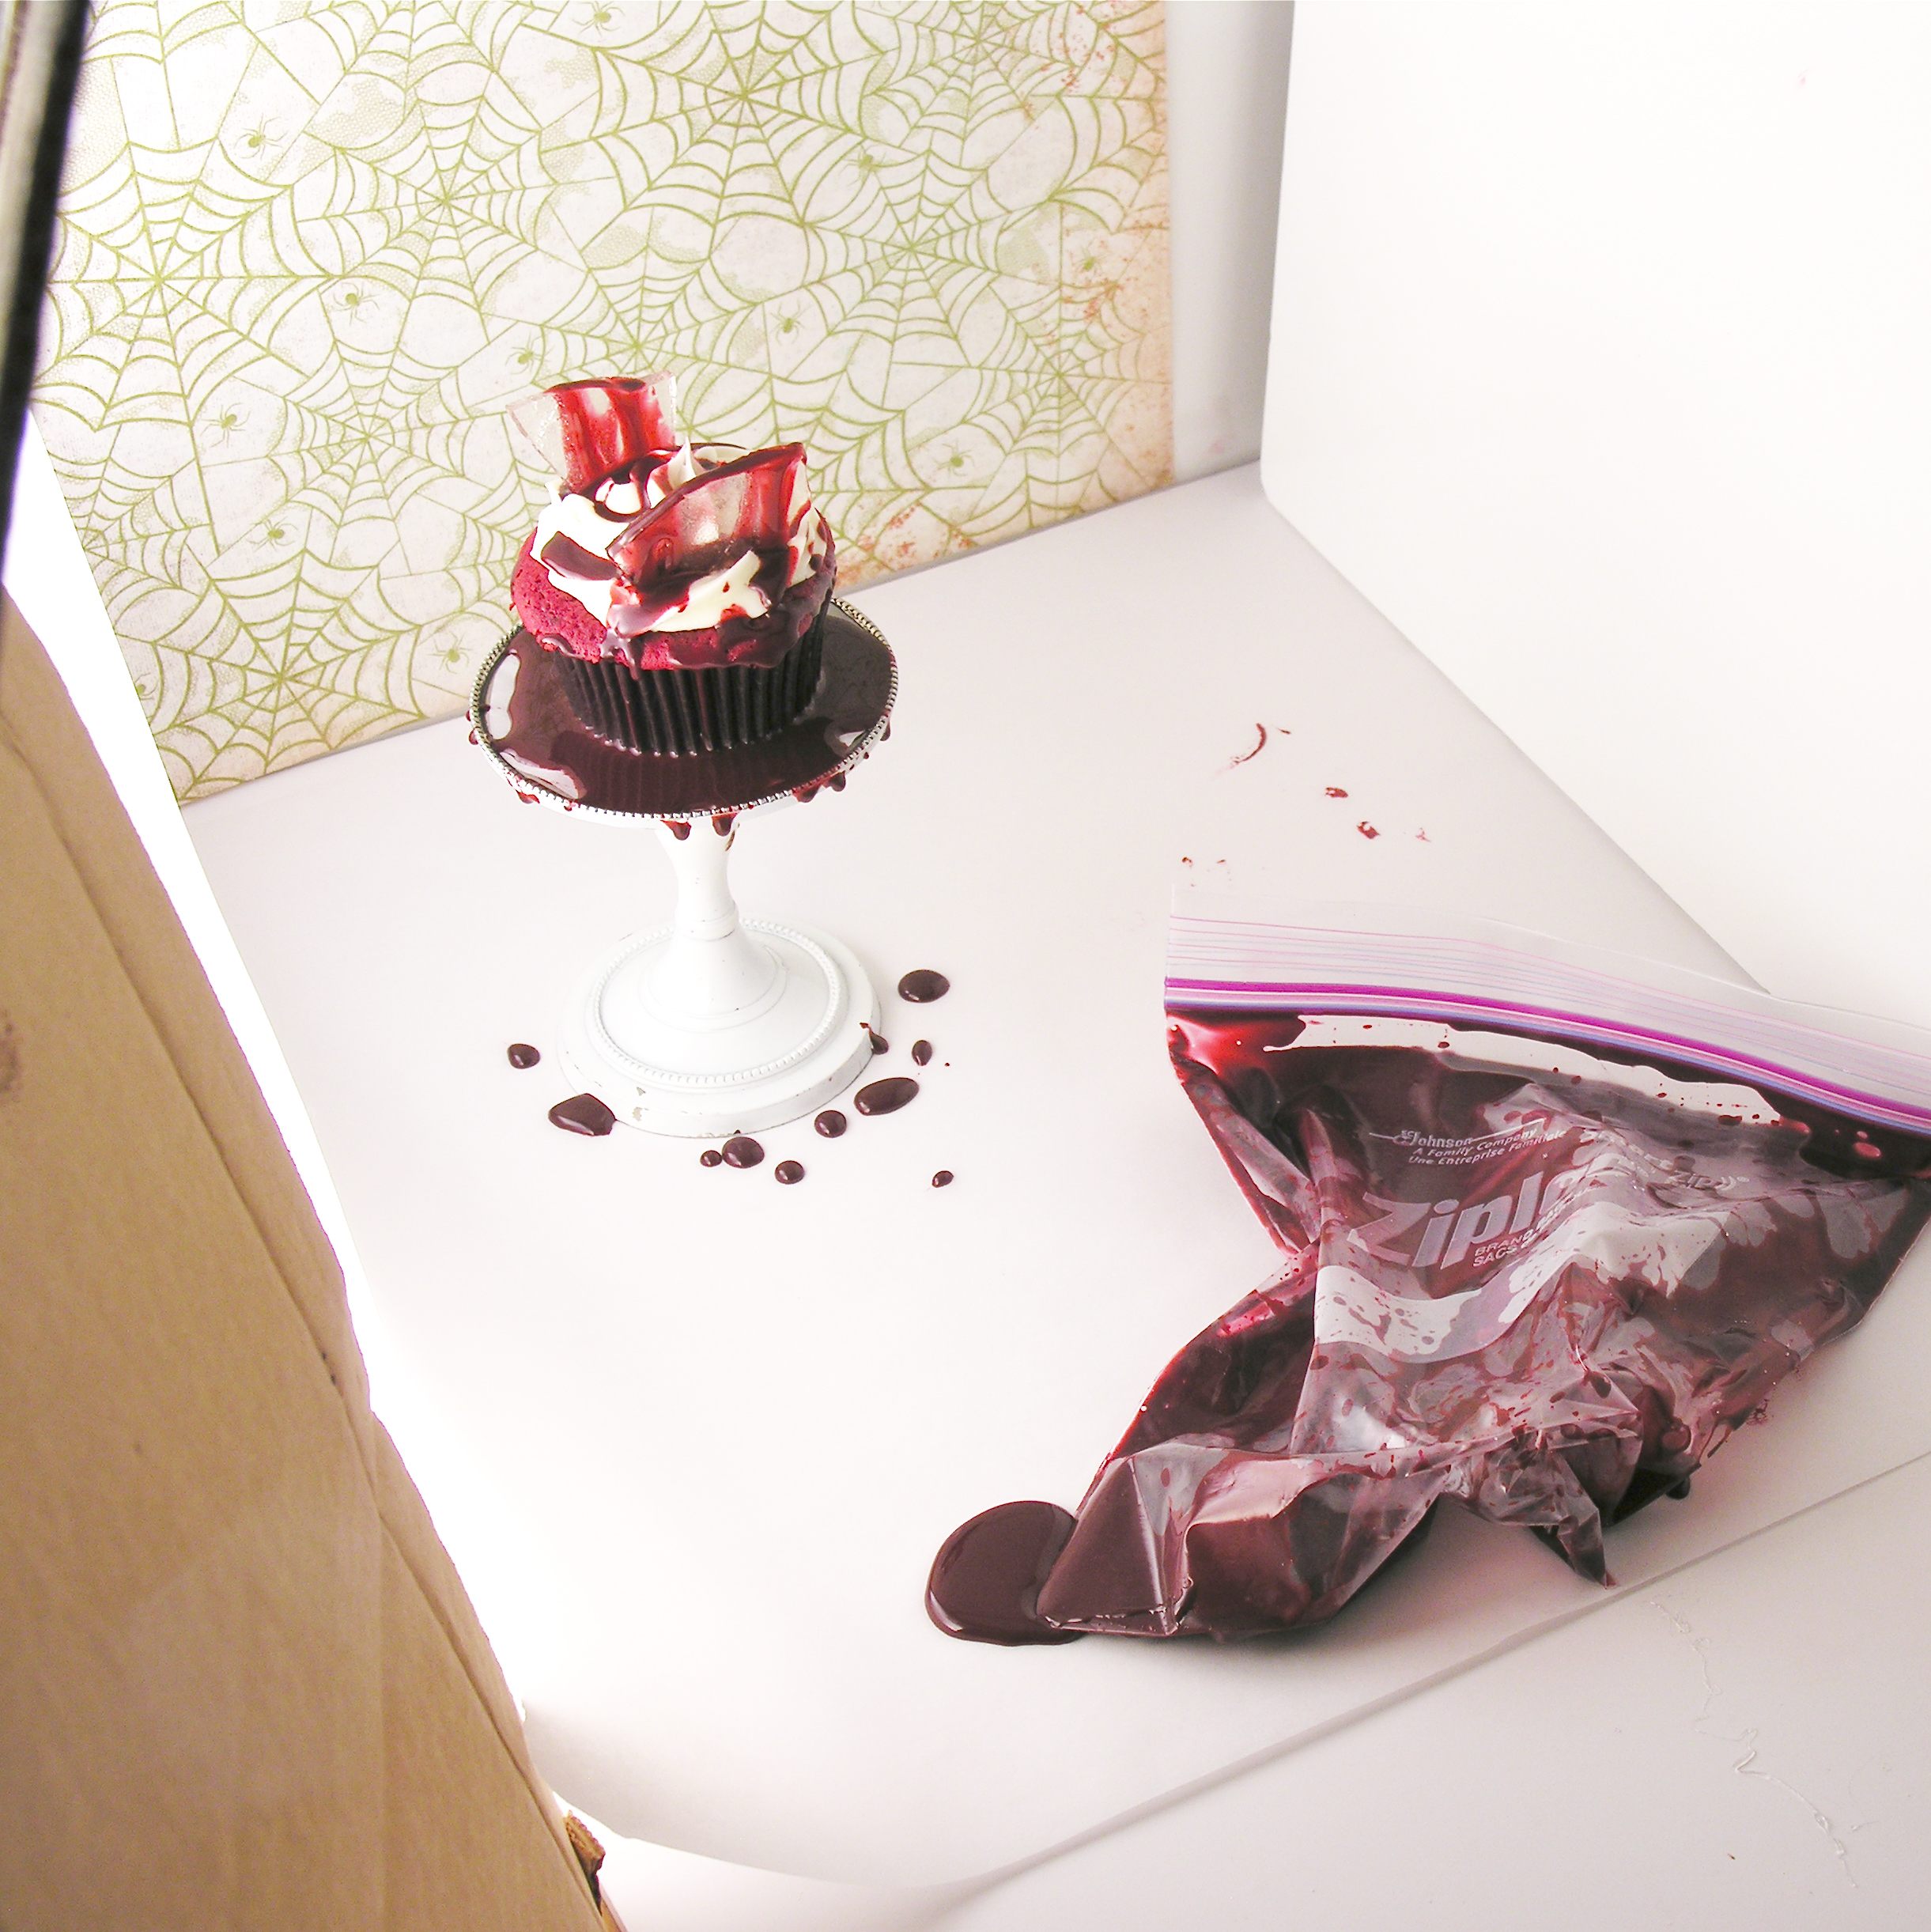 Broken glass cupcakes-- food photography at its finest....lol!